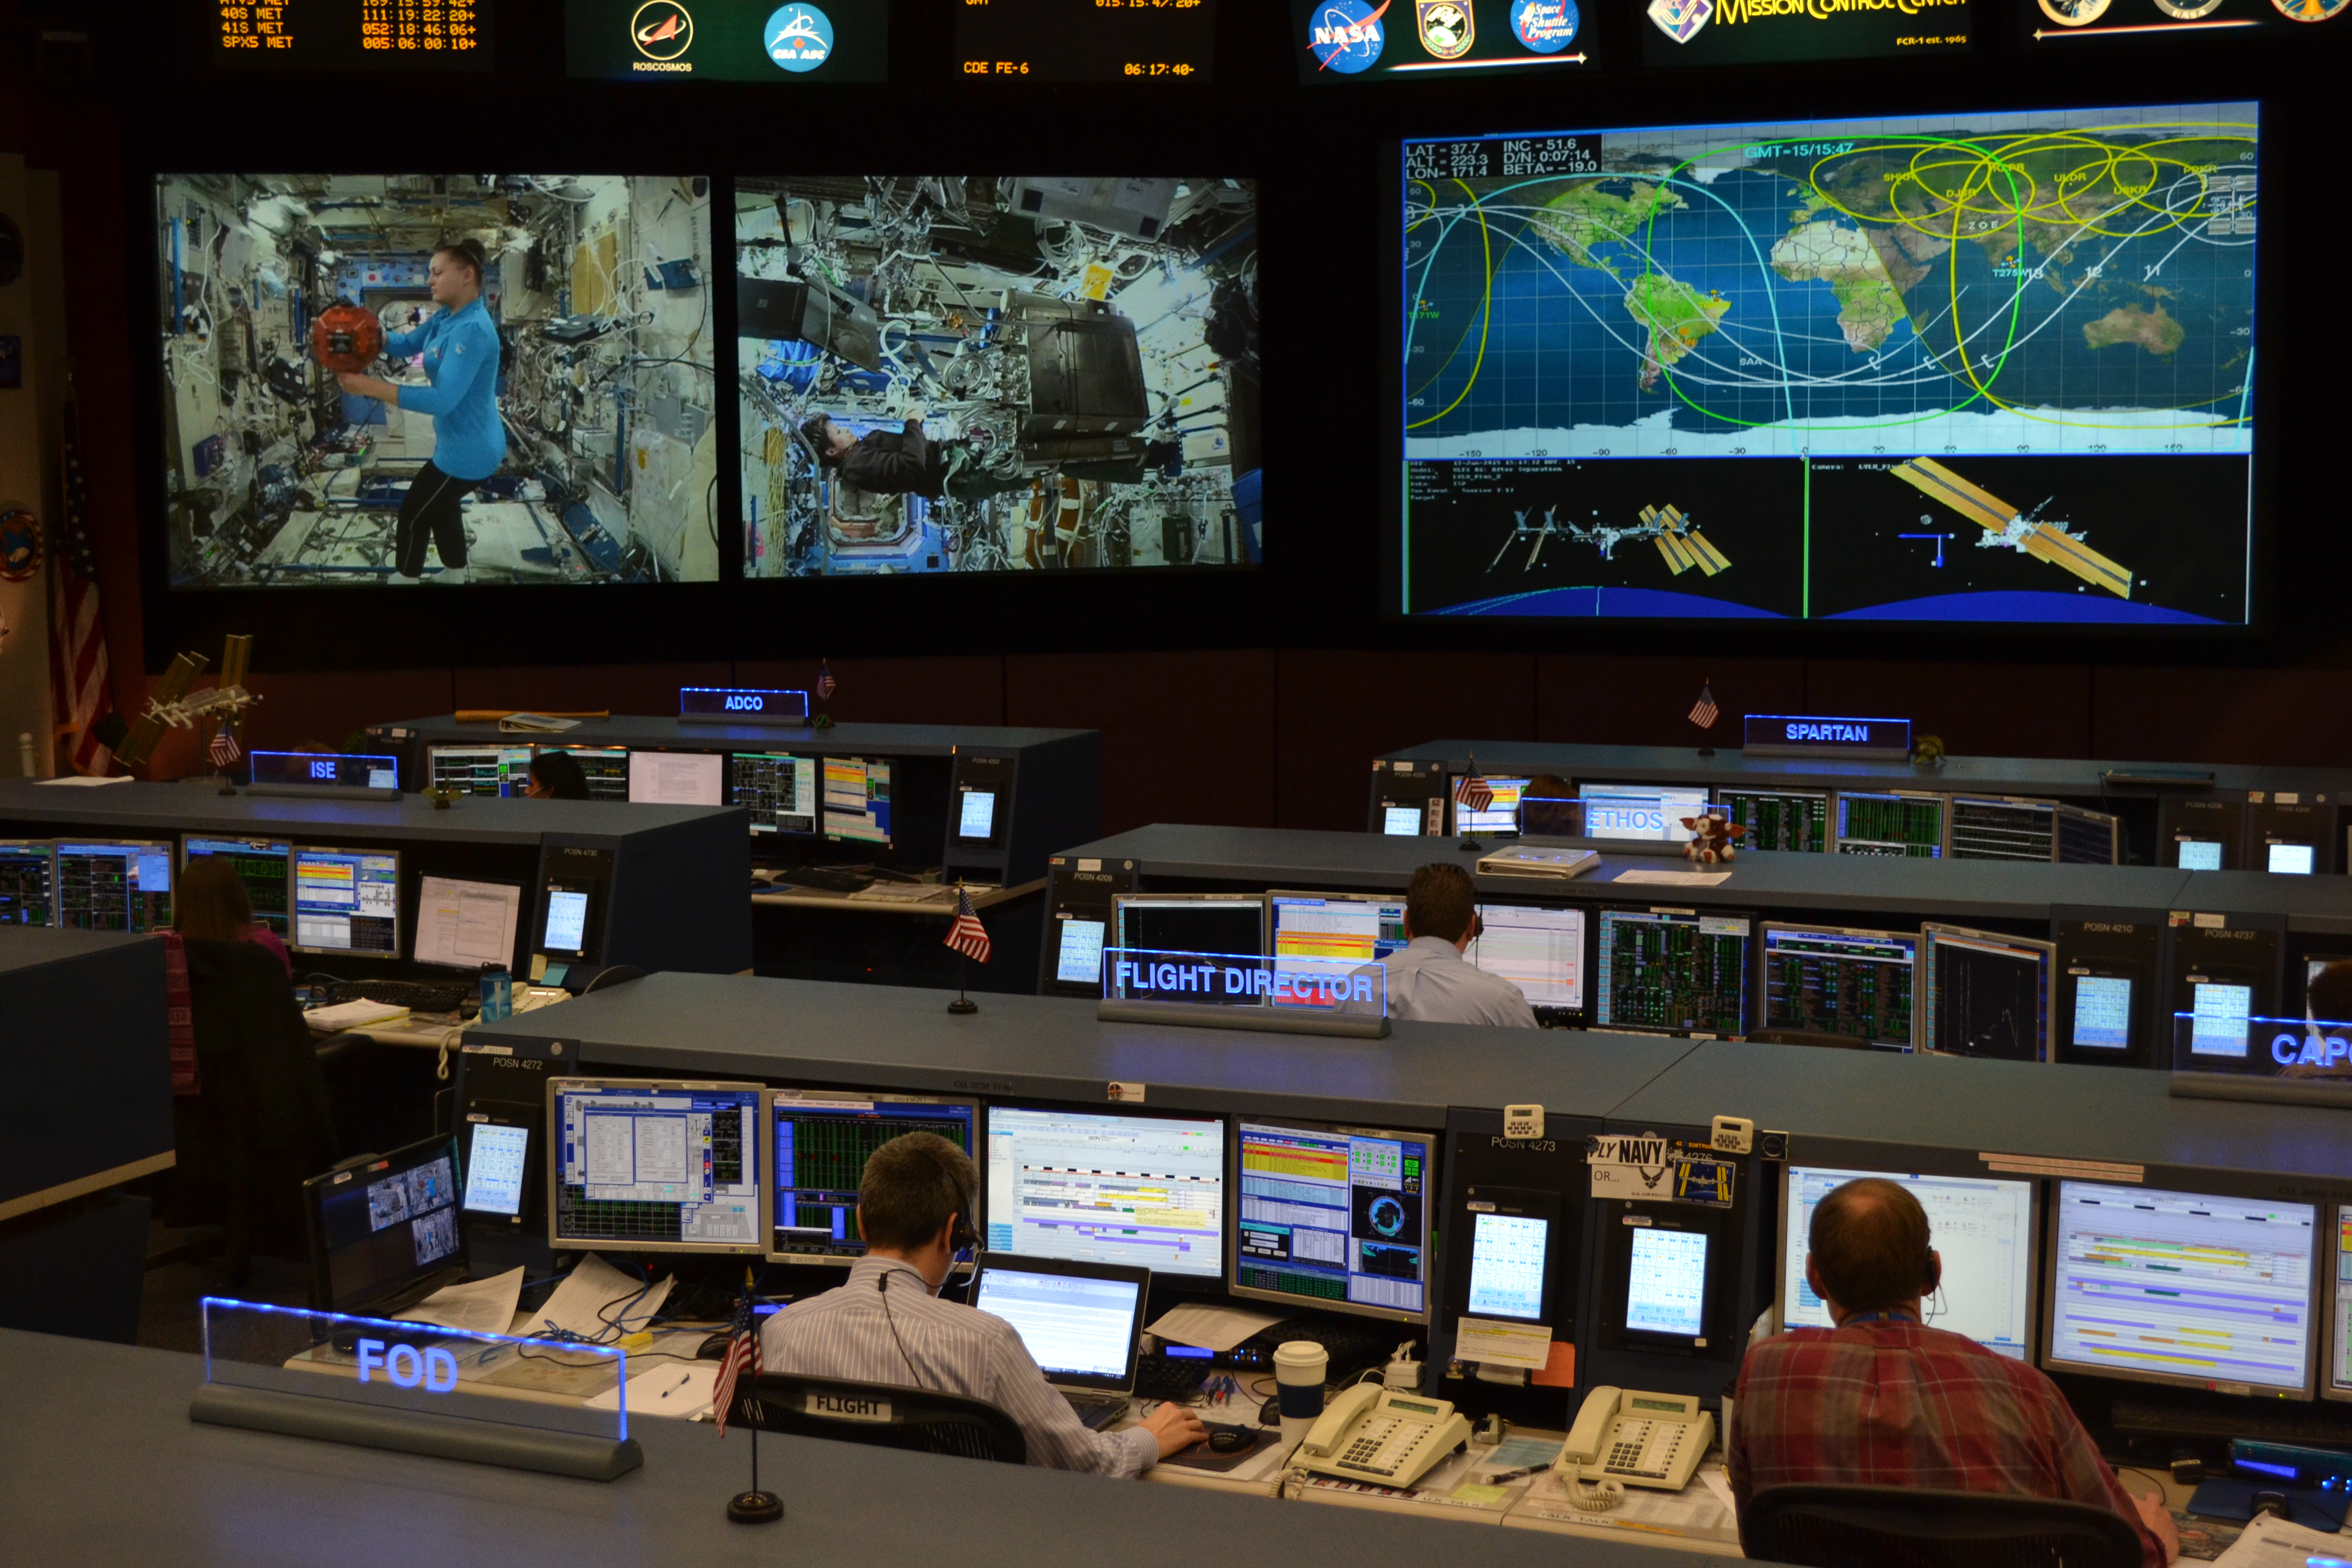 houston space station controls - photo #18